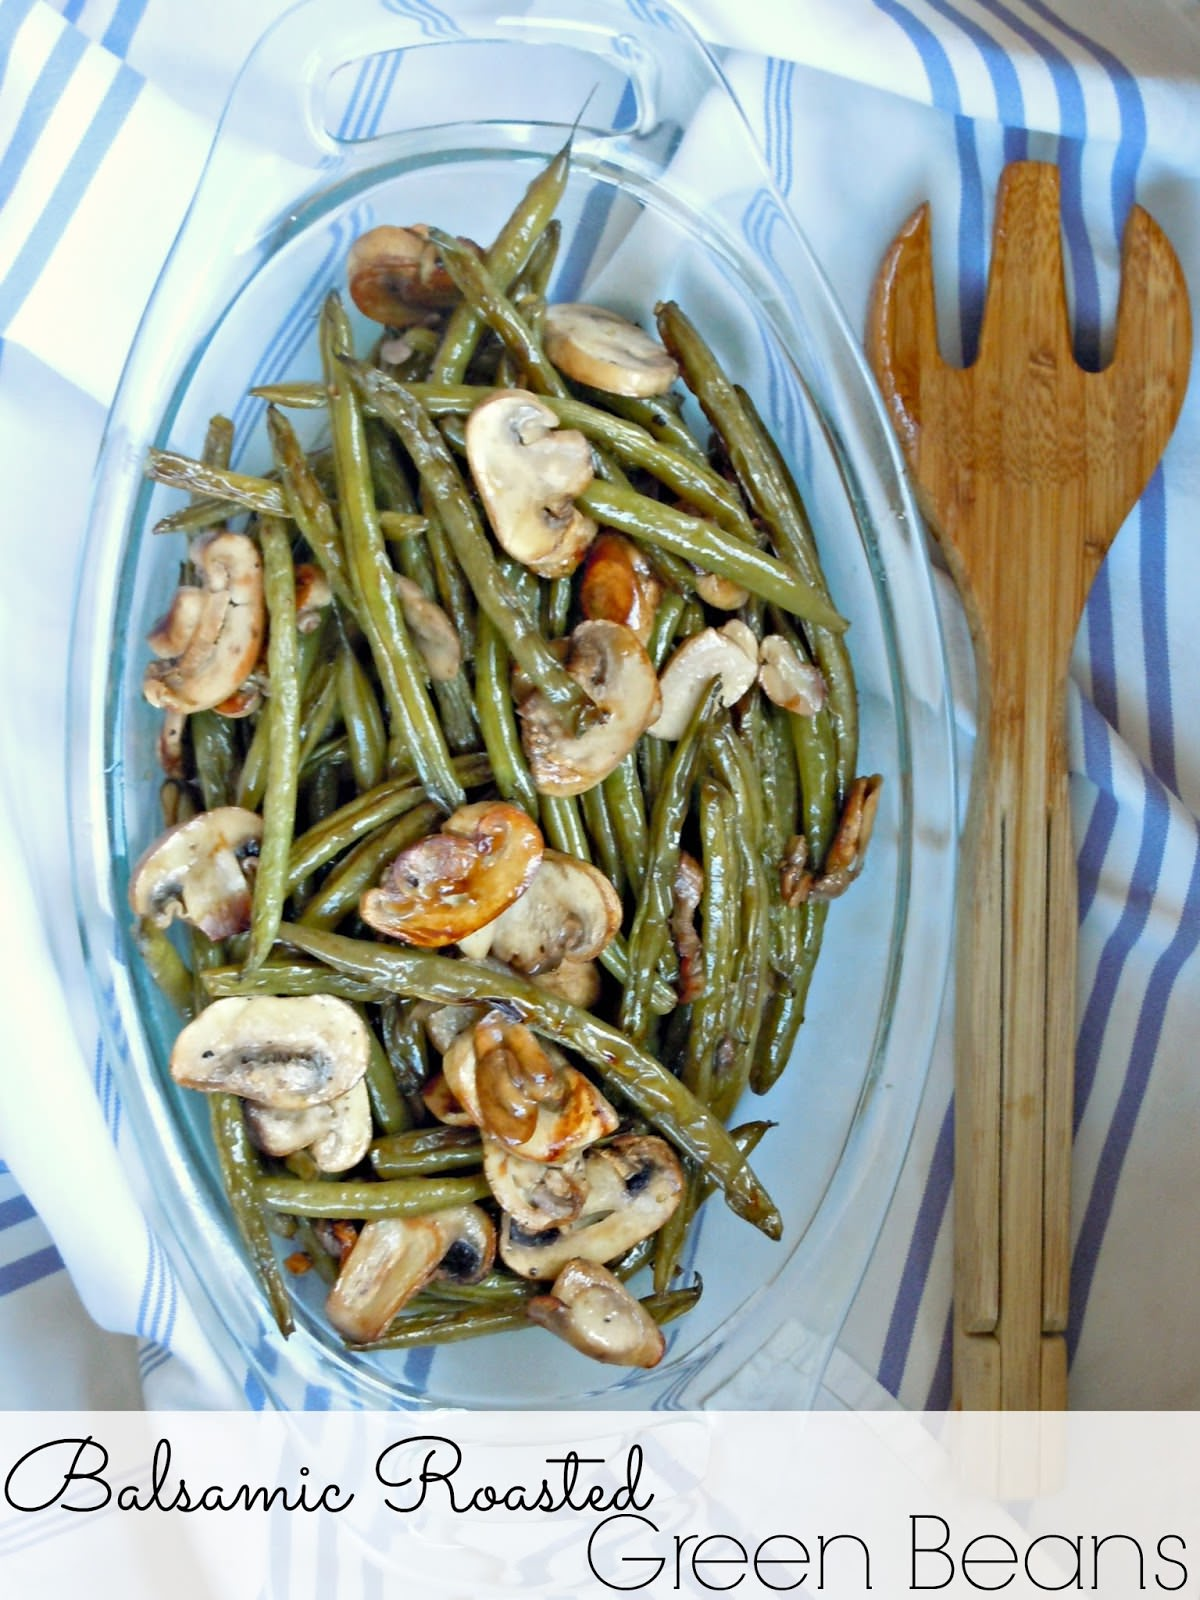 Balsamic Roasted Green Beans by Life a Little Brighter